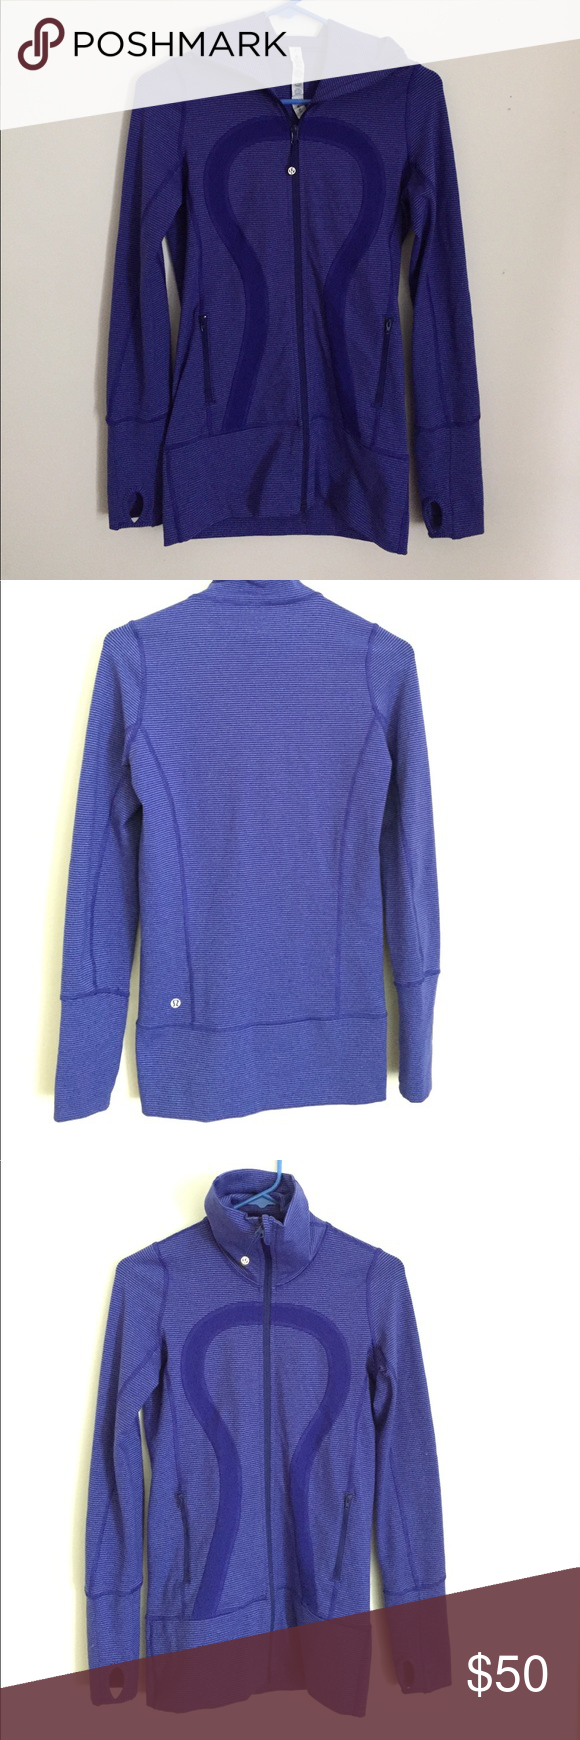 Lululemon purple striped zip-up sweater | Lululemon, Lululemon ...